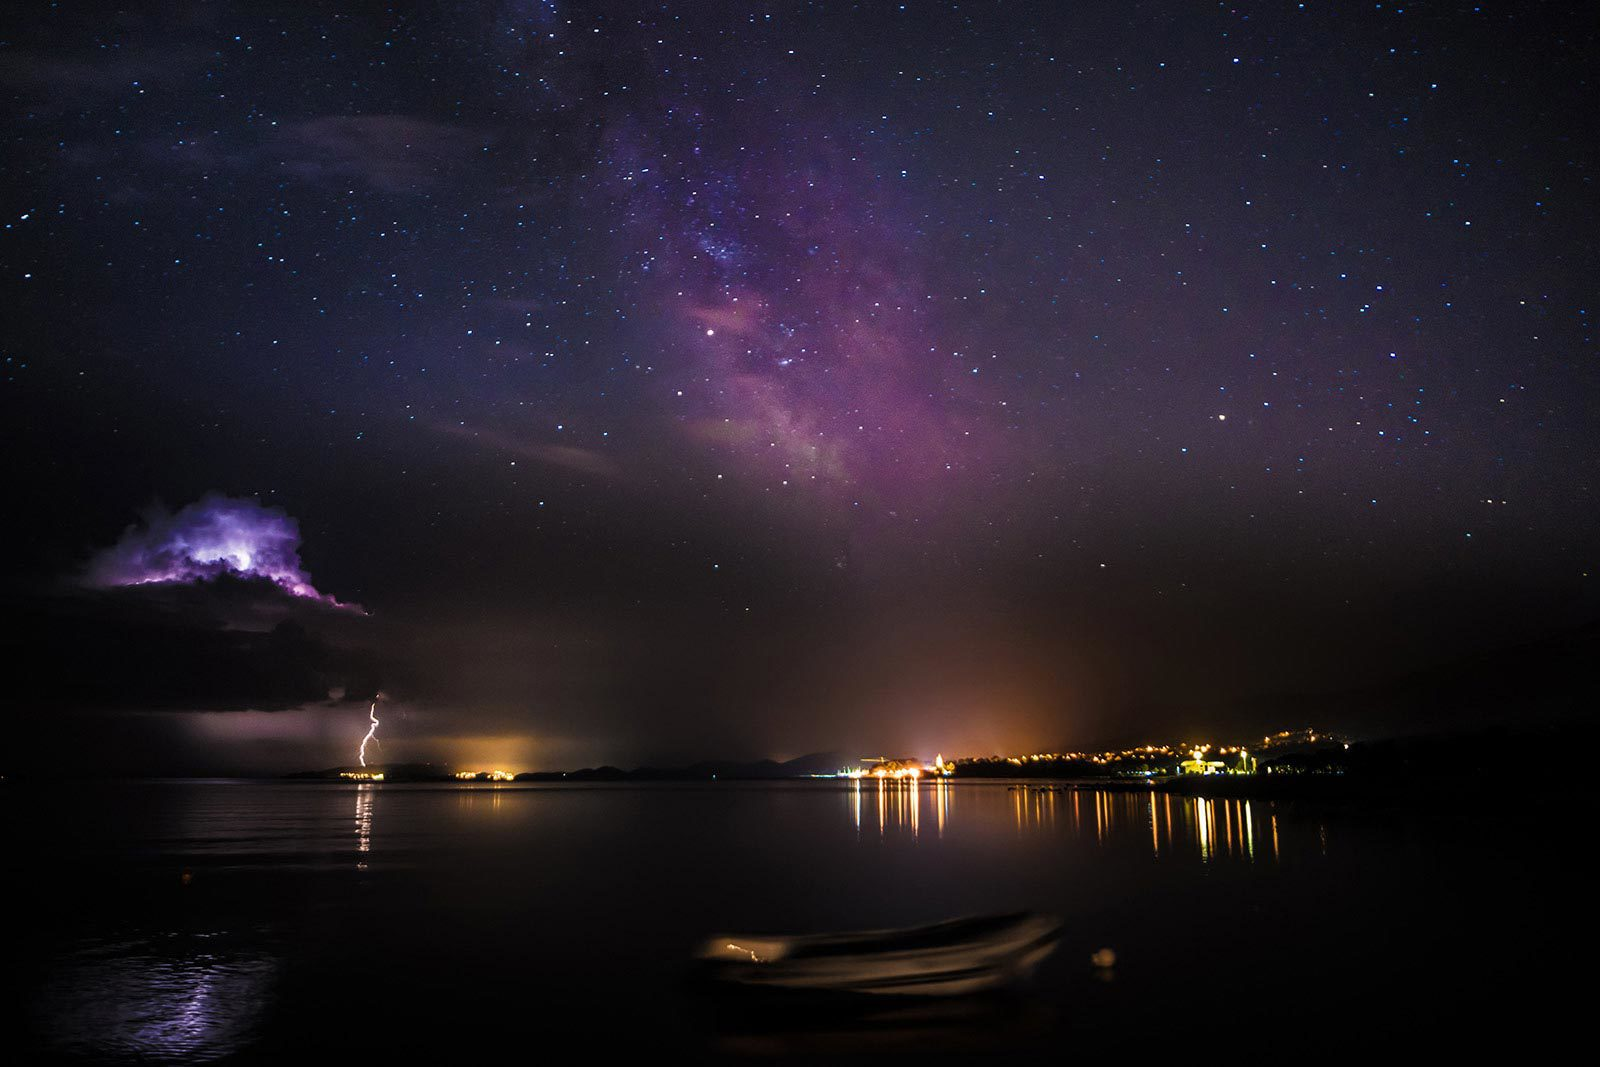 View of lake with city in distance, purple starry sky and lightning in distance.